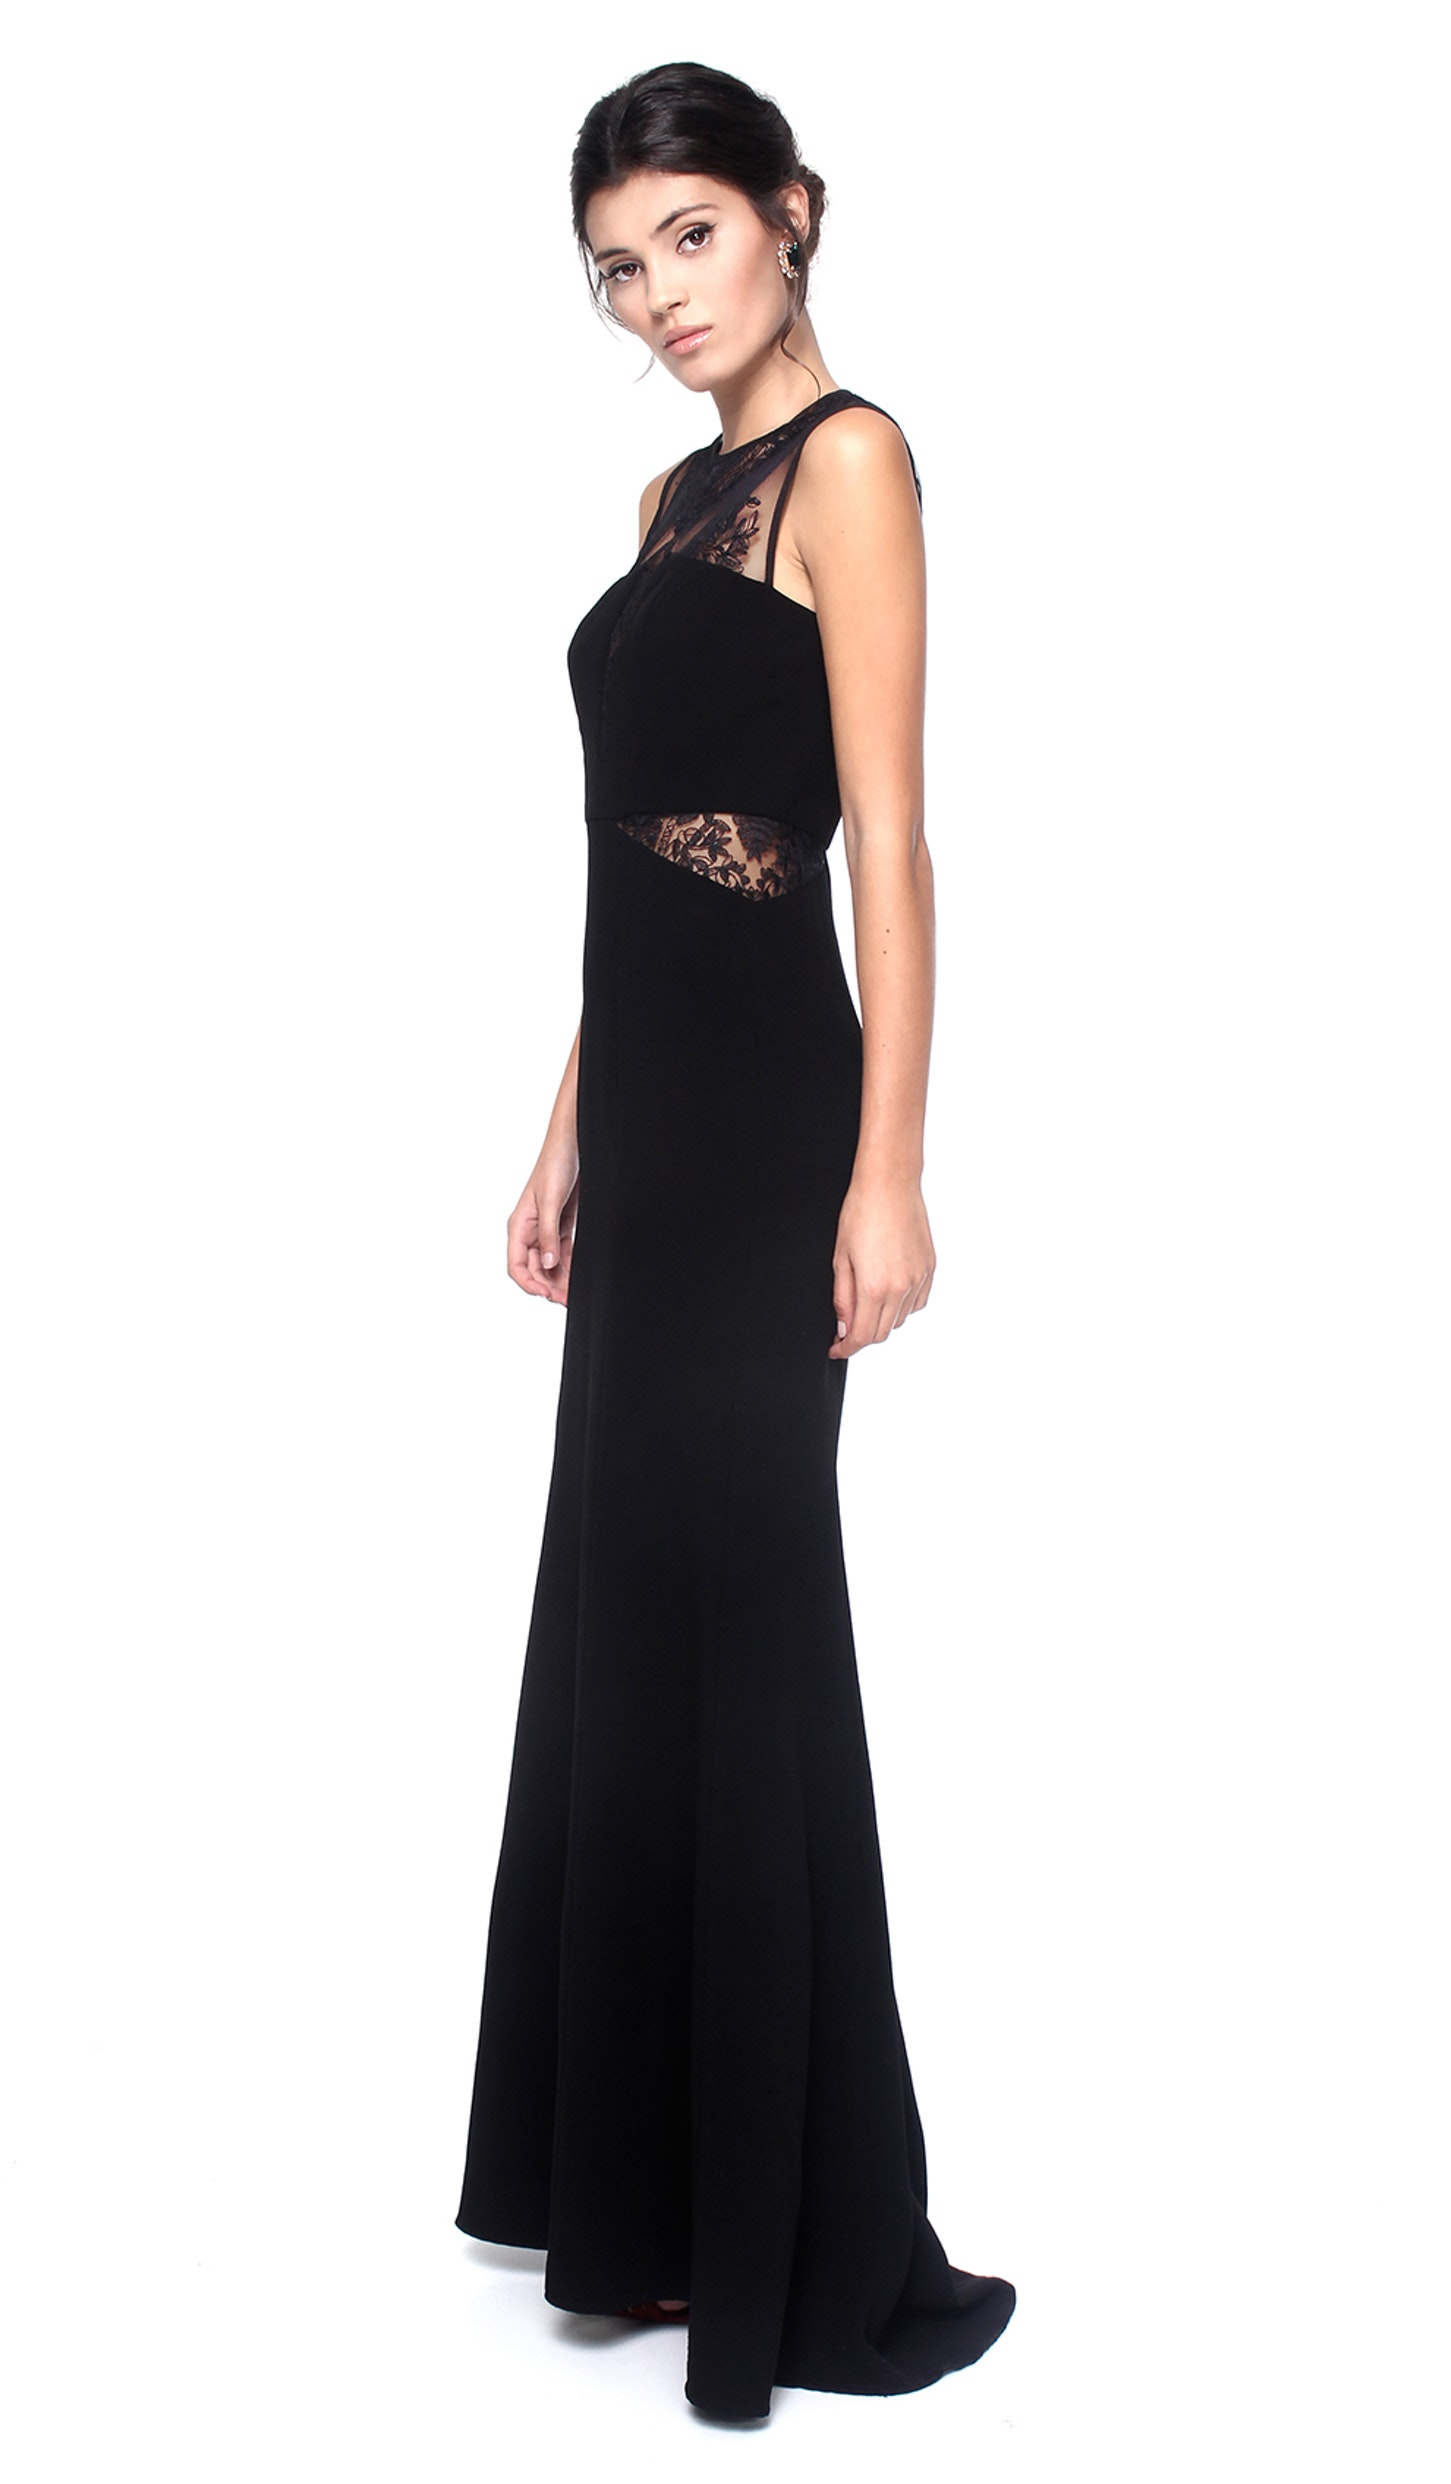 Black Lace Evening Gown - FOUR FLAVOR — Chic by Choice Sale